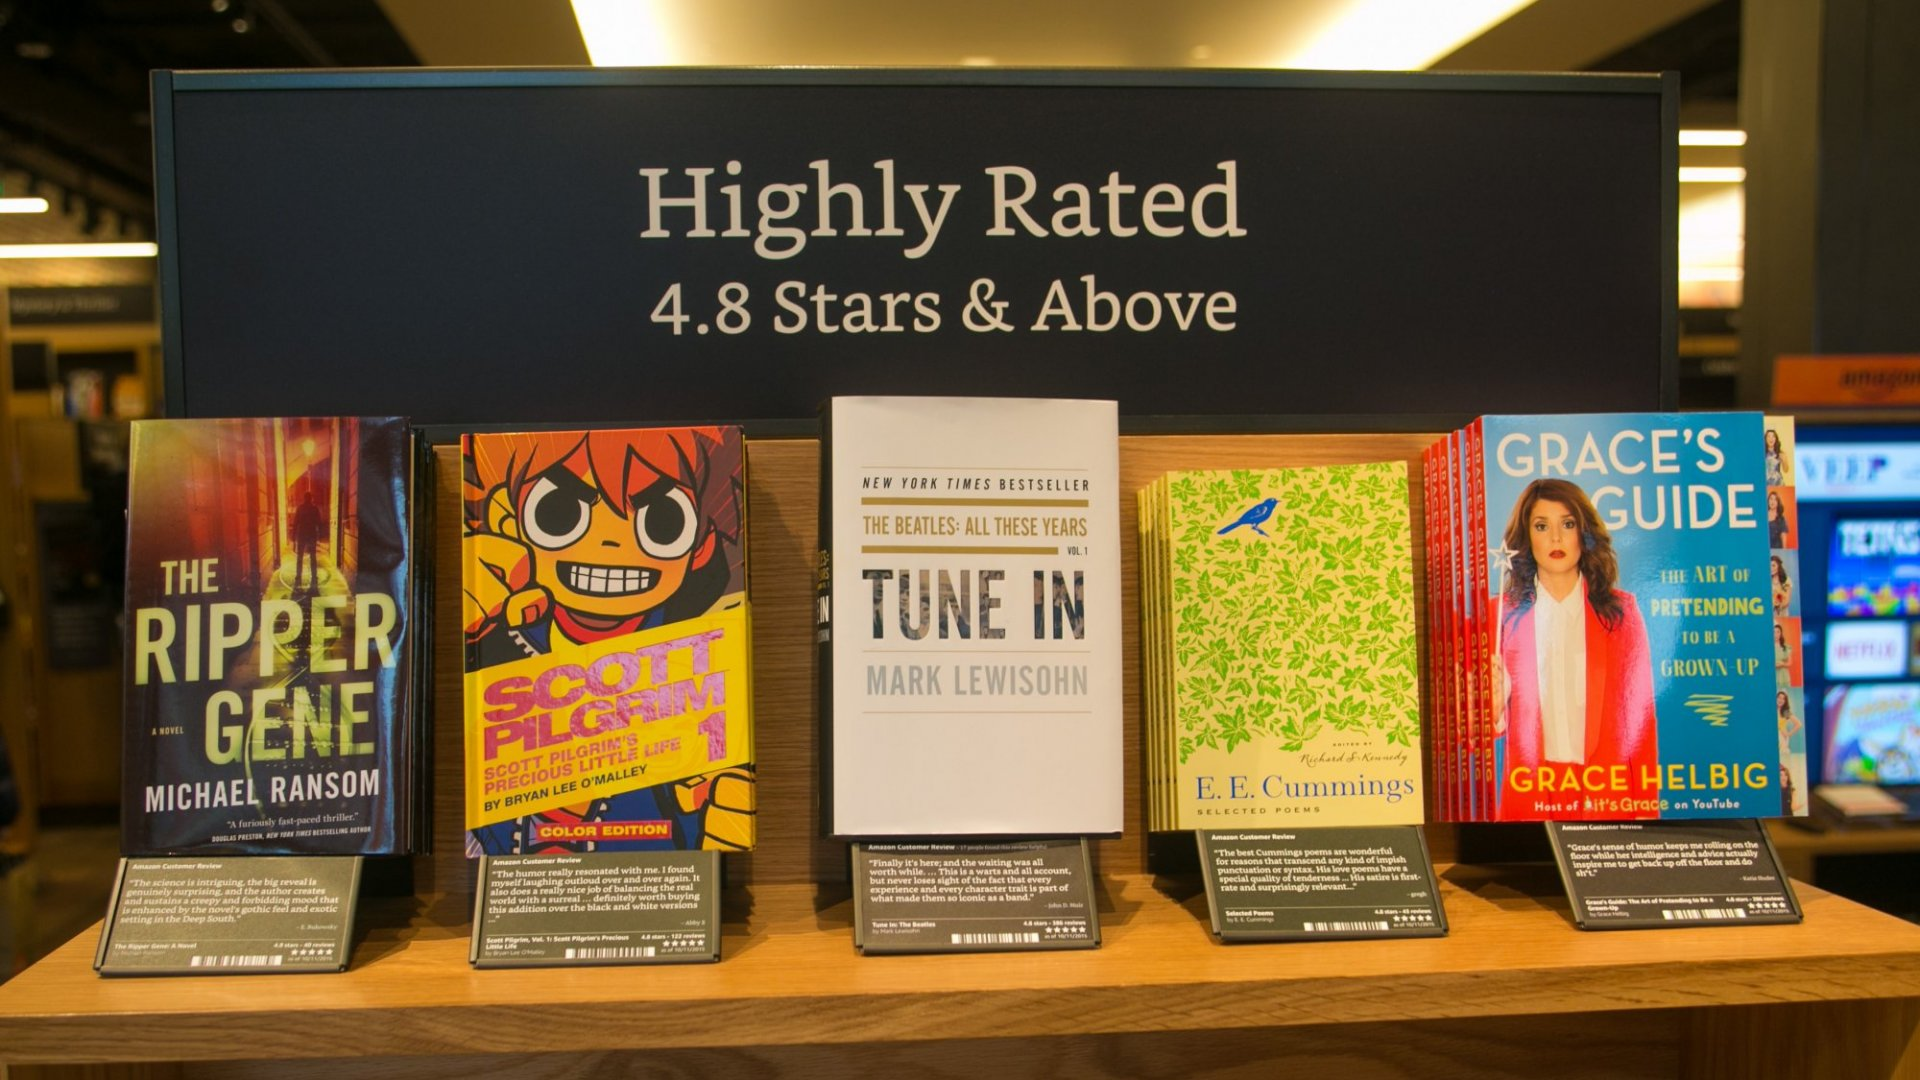 Amazon Just Opened Another Brick and Mortar Book Store. The World Shrugged